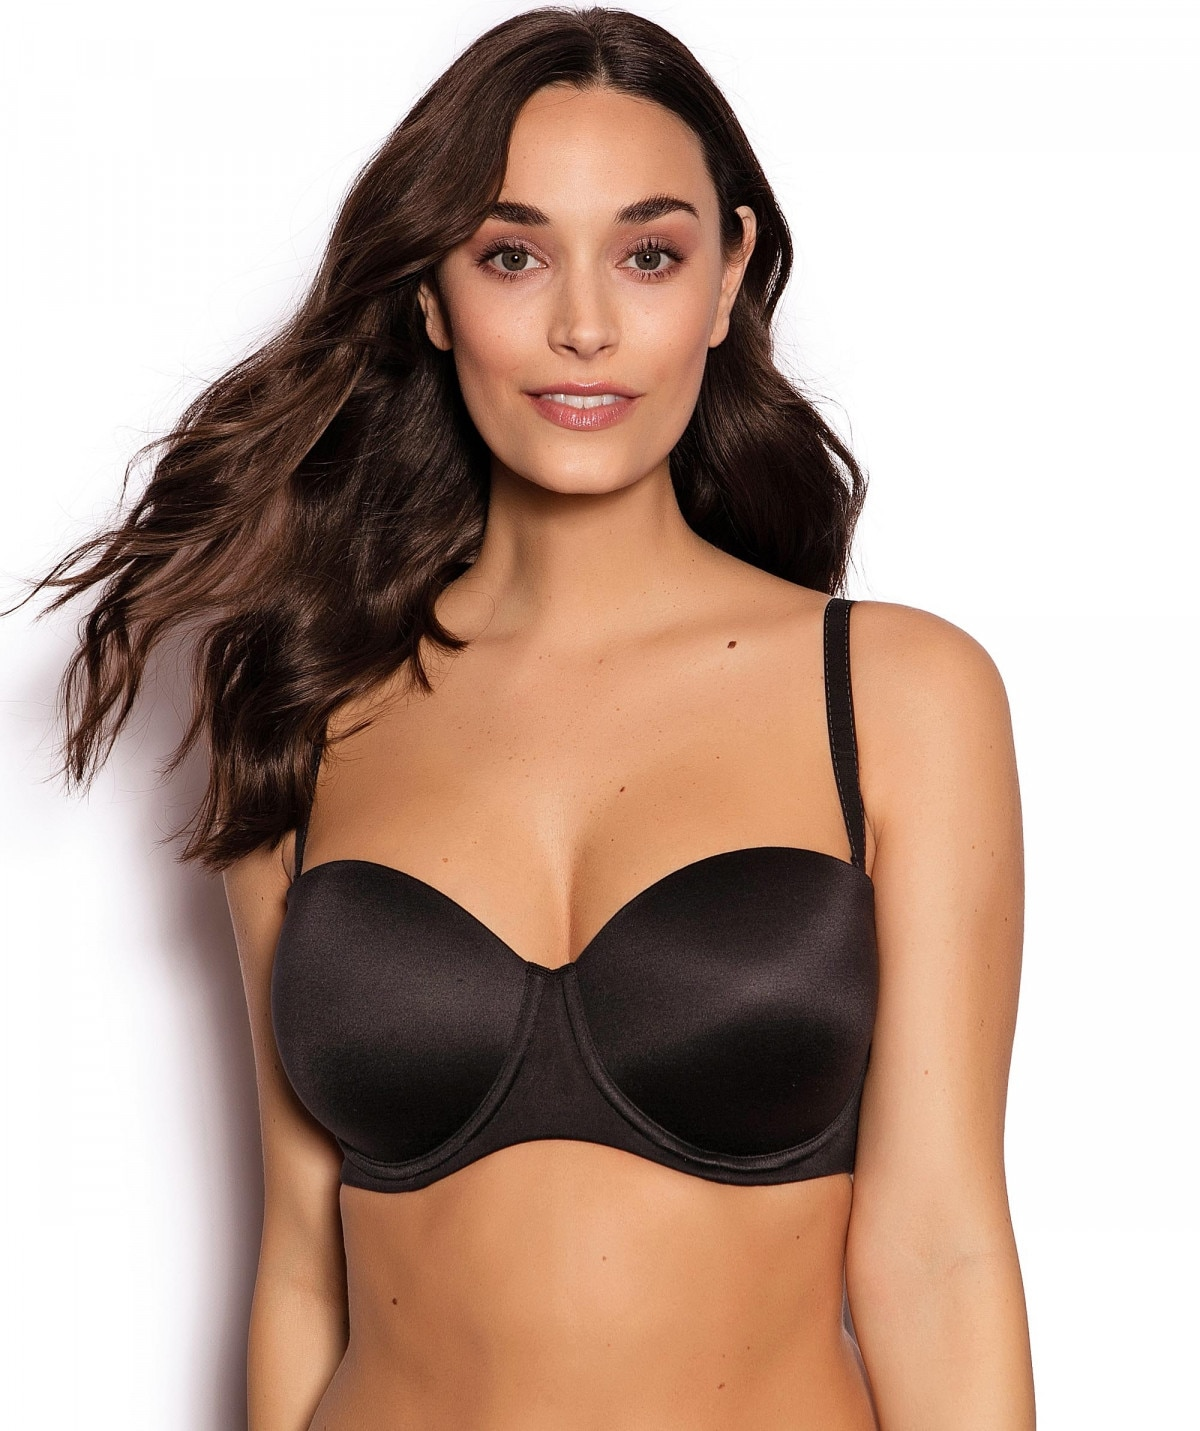 000c2582a6e66 Body Bliss Full Cup Strapless Bra - Black.  59.99.  59.99. 4 ...